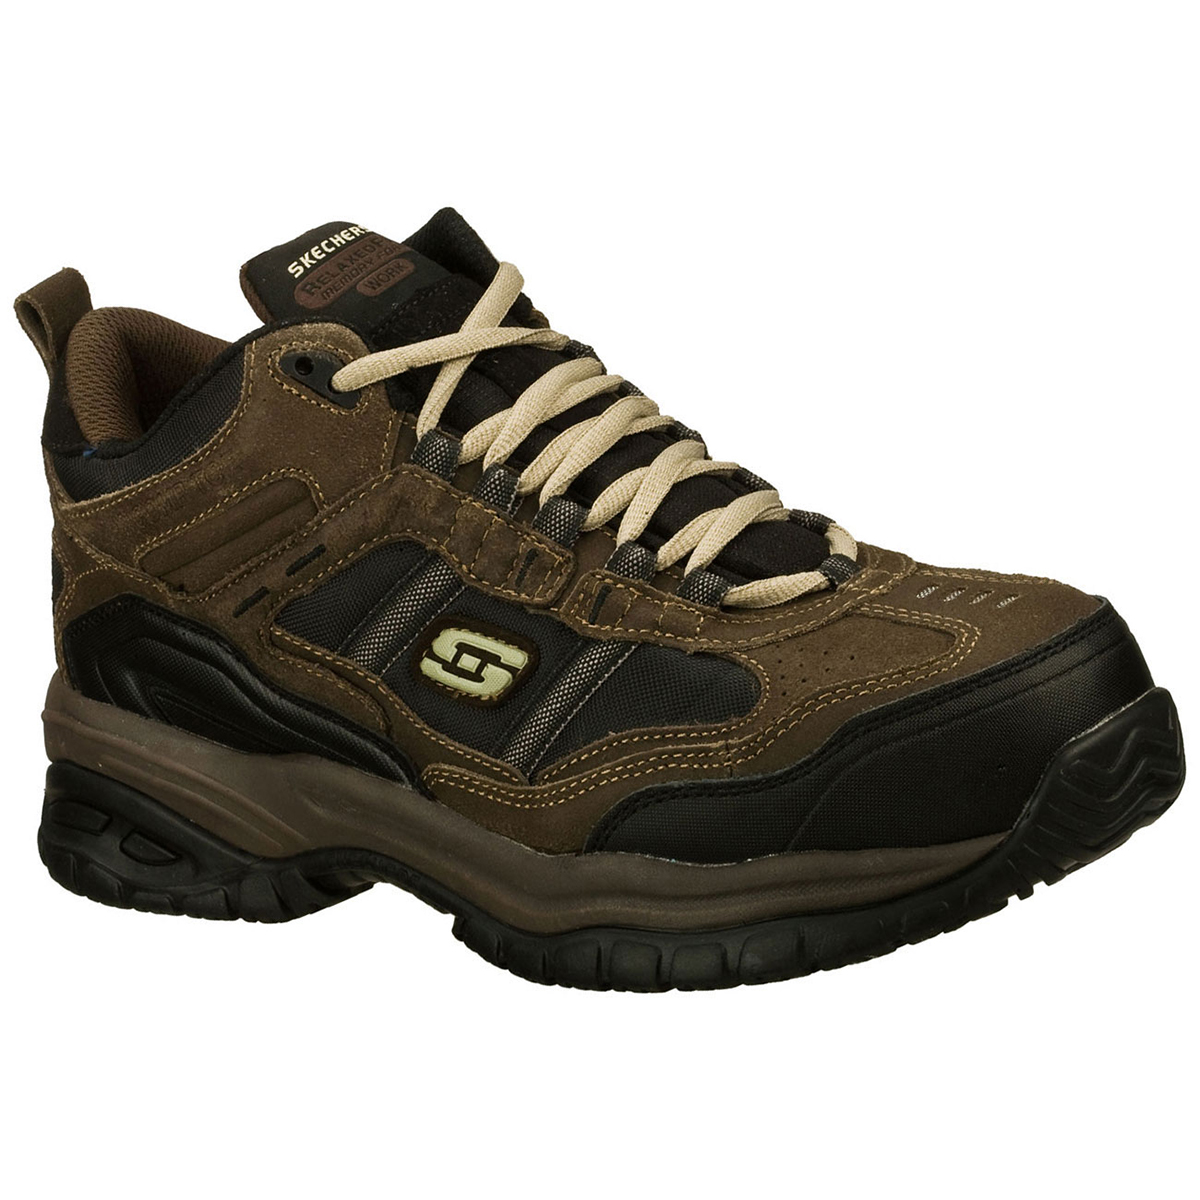 Skechers Men's Work Relaxed Fit: Soft Stride Canopy Comp Toe, Extra Wide - Brown, 8.5